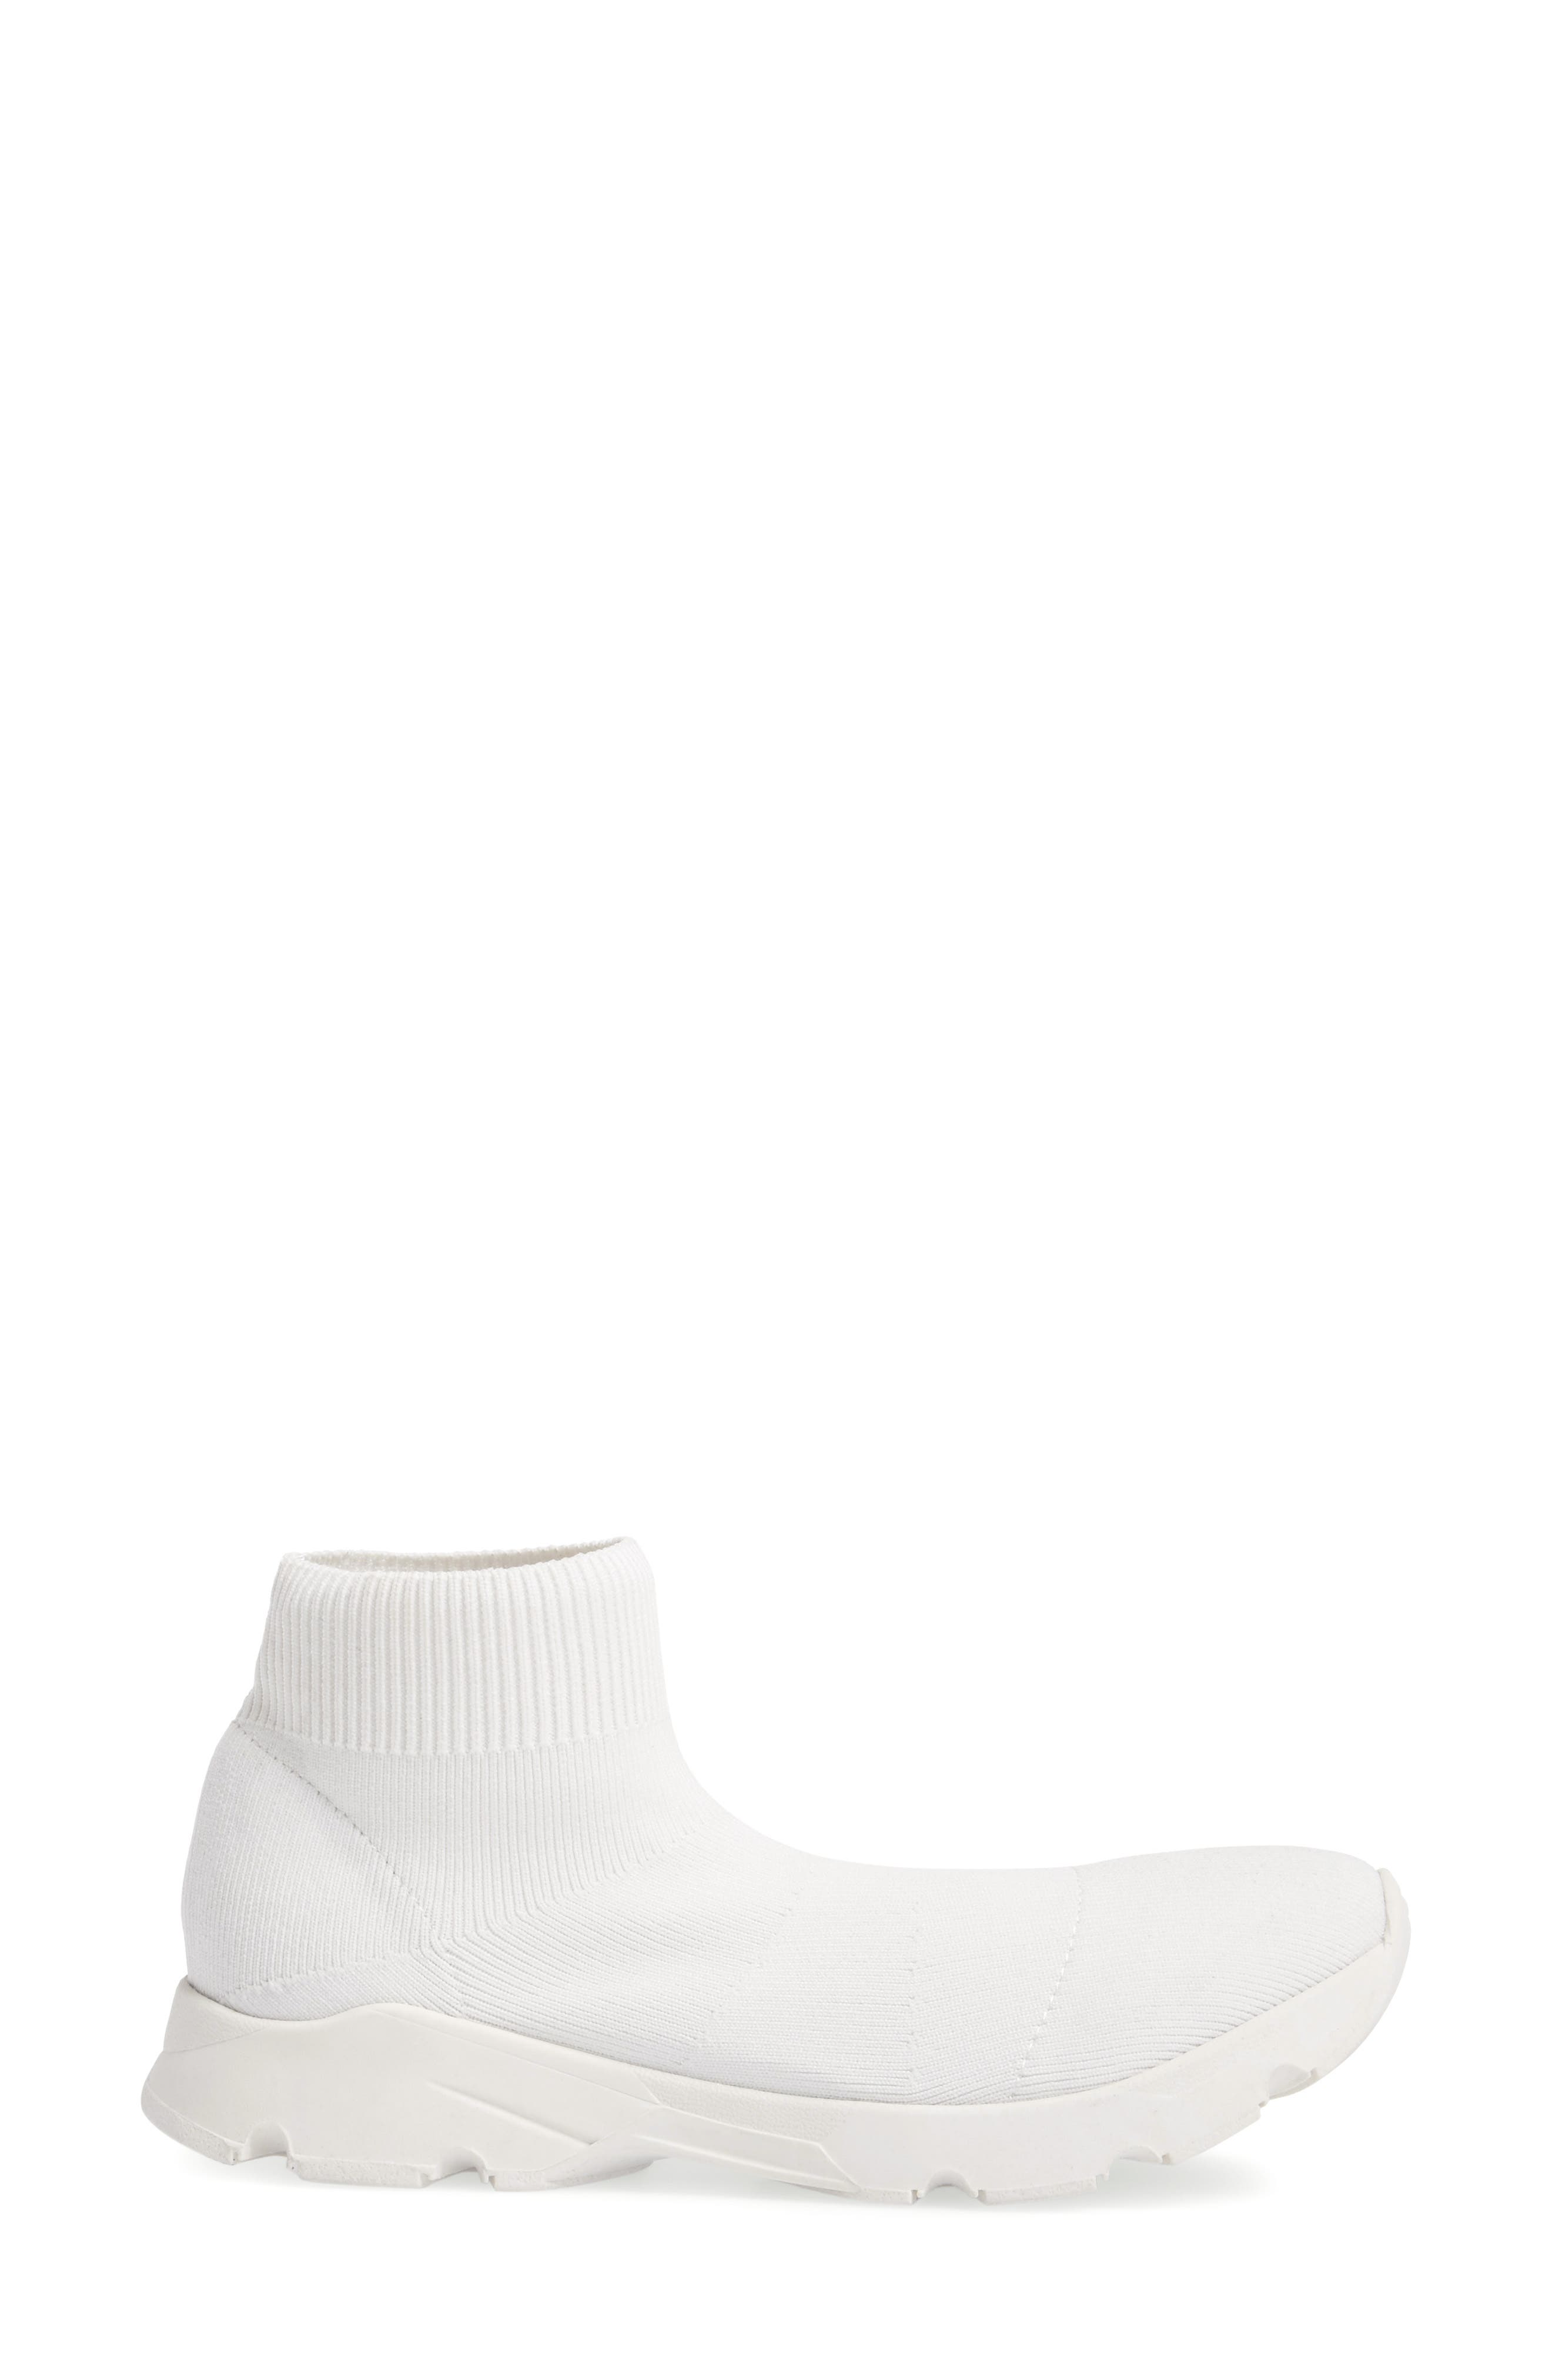 Winston Knit High Top Sneaker,                             Alternate thumbnail 3, color,                             White Vortex